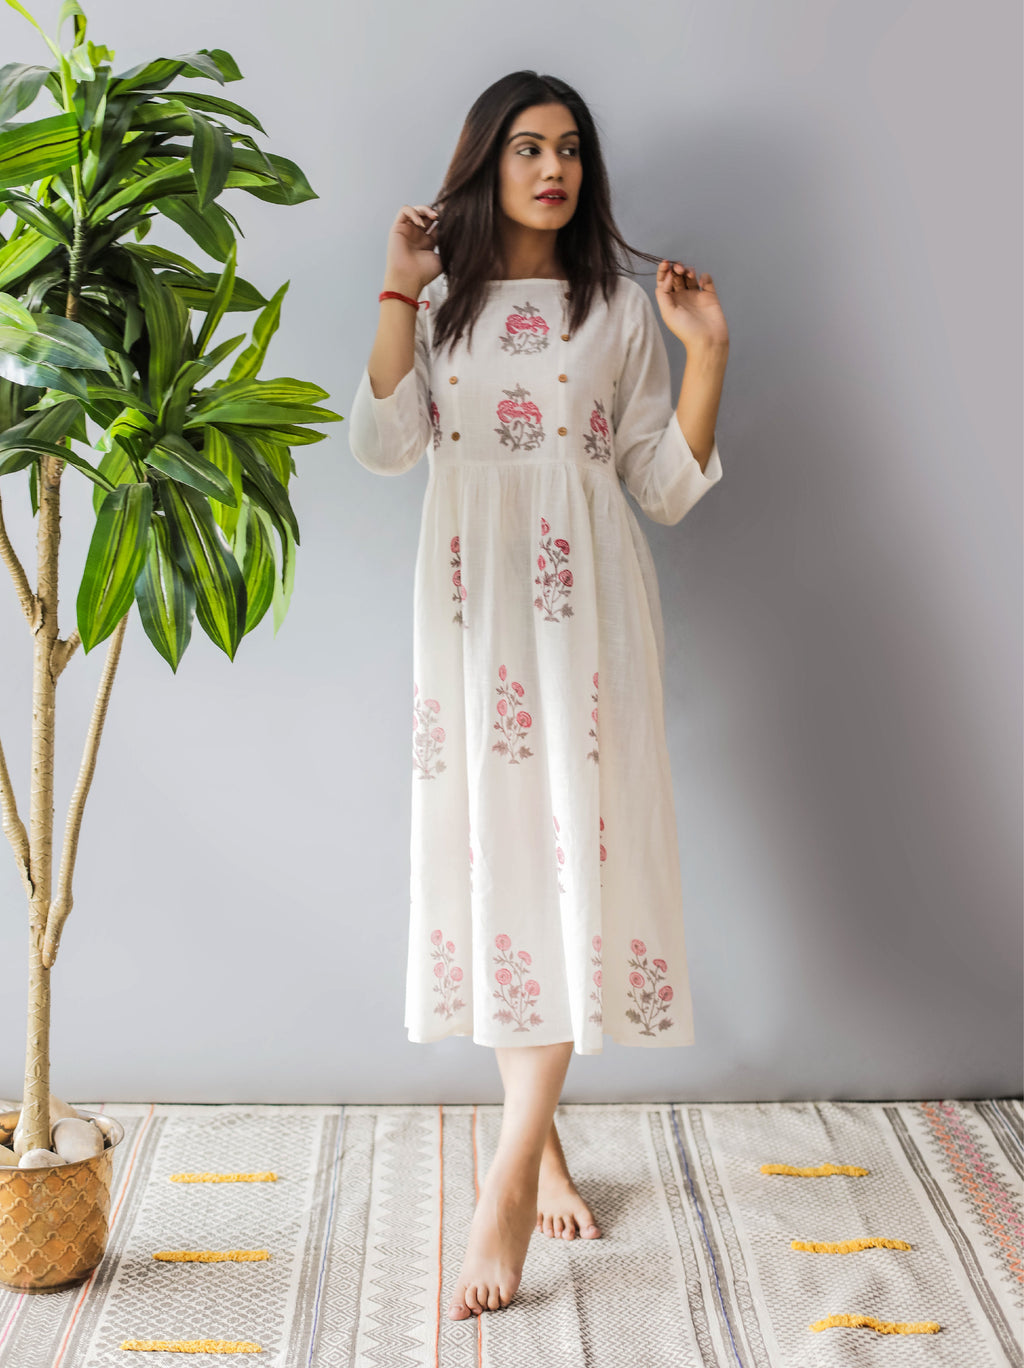 Spring Flower Block Print Maxi Dress